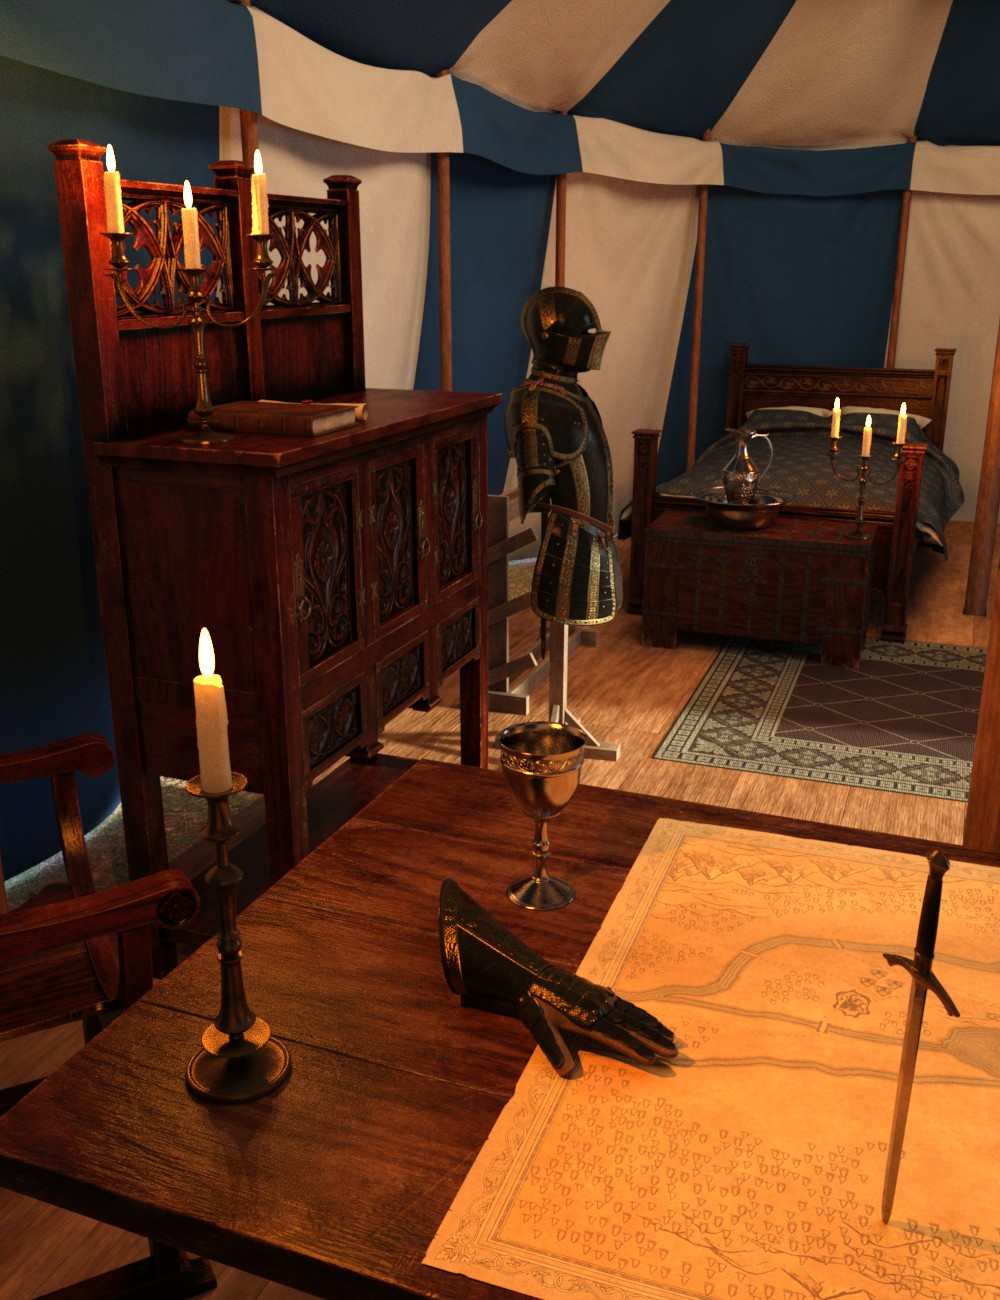 Commander's Tent Furniture and Things by: Goriav, 3D Models by Daz 3D